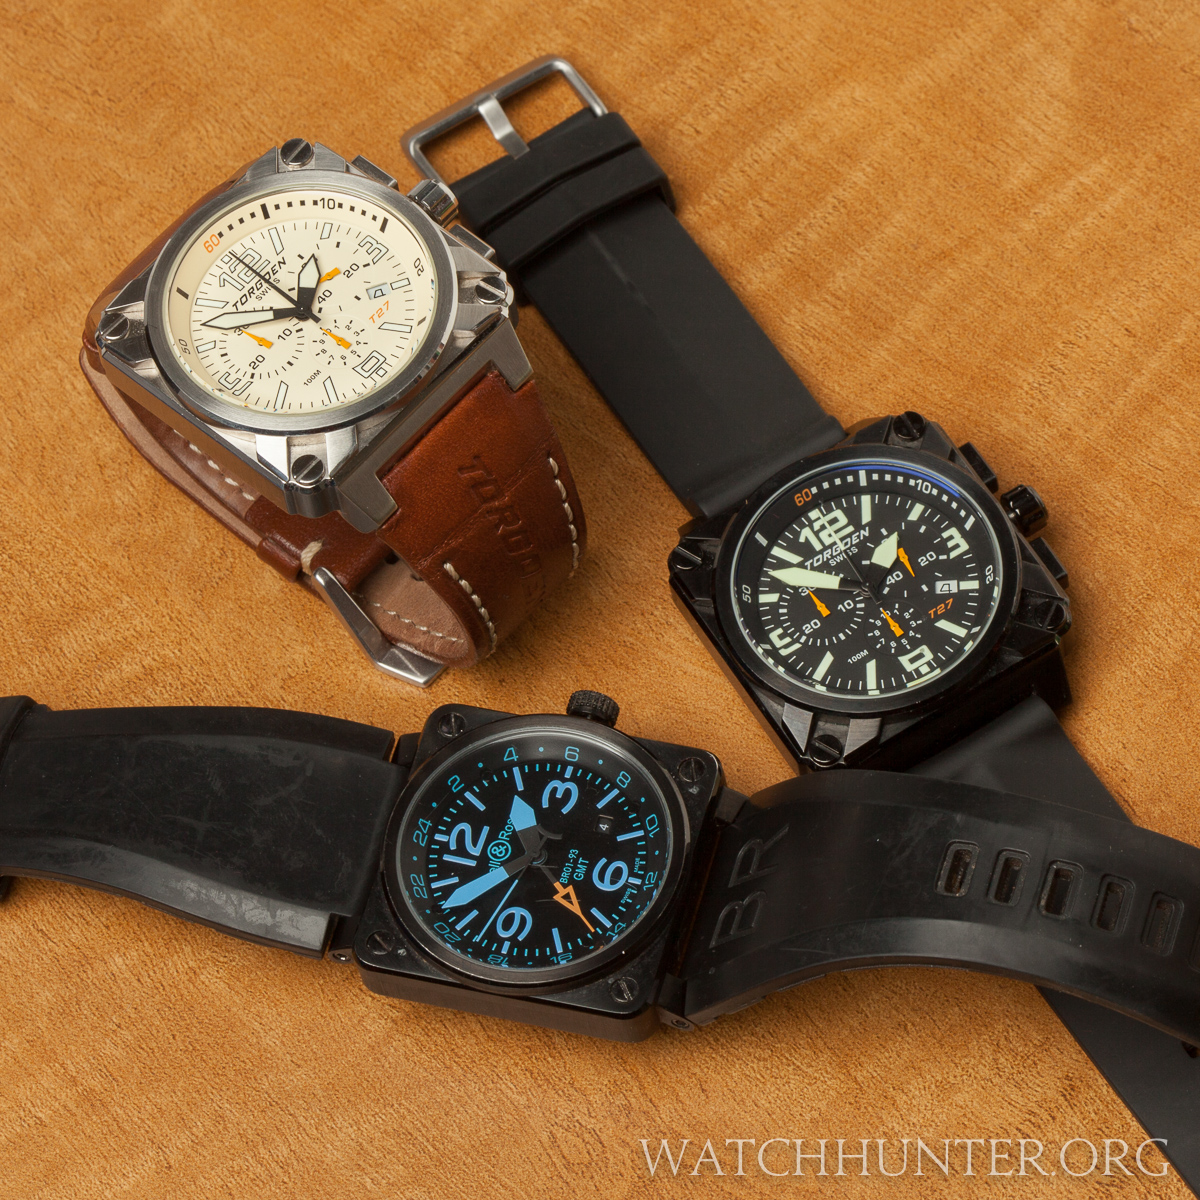 The square watch theme popularized by Bell & Ross and borrowed by others